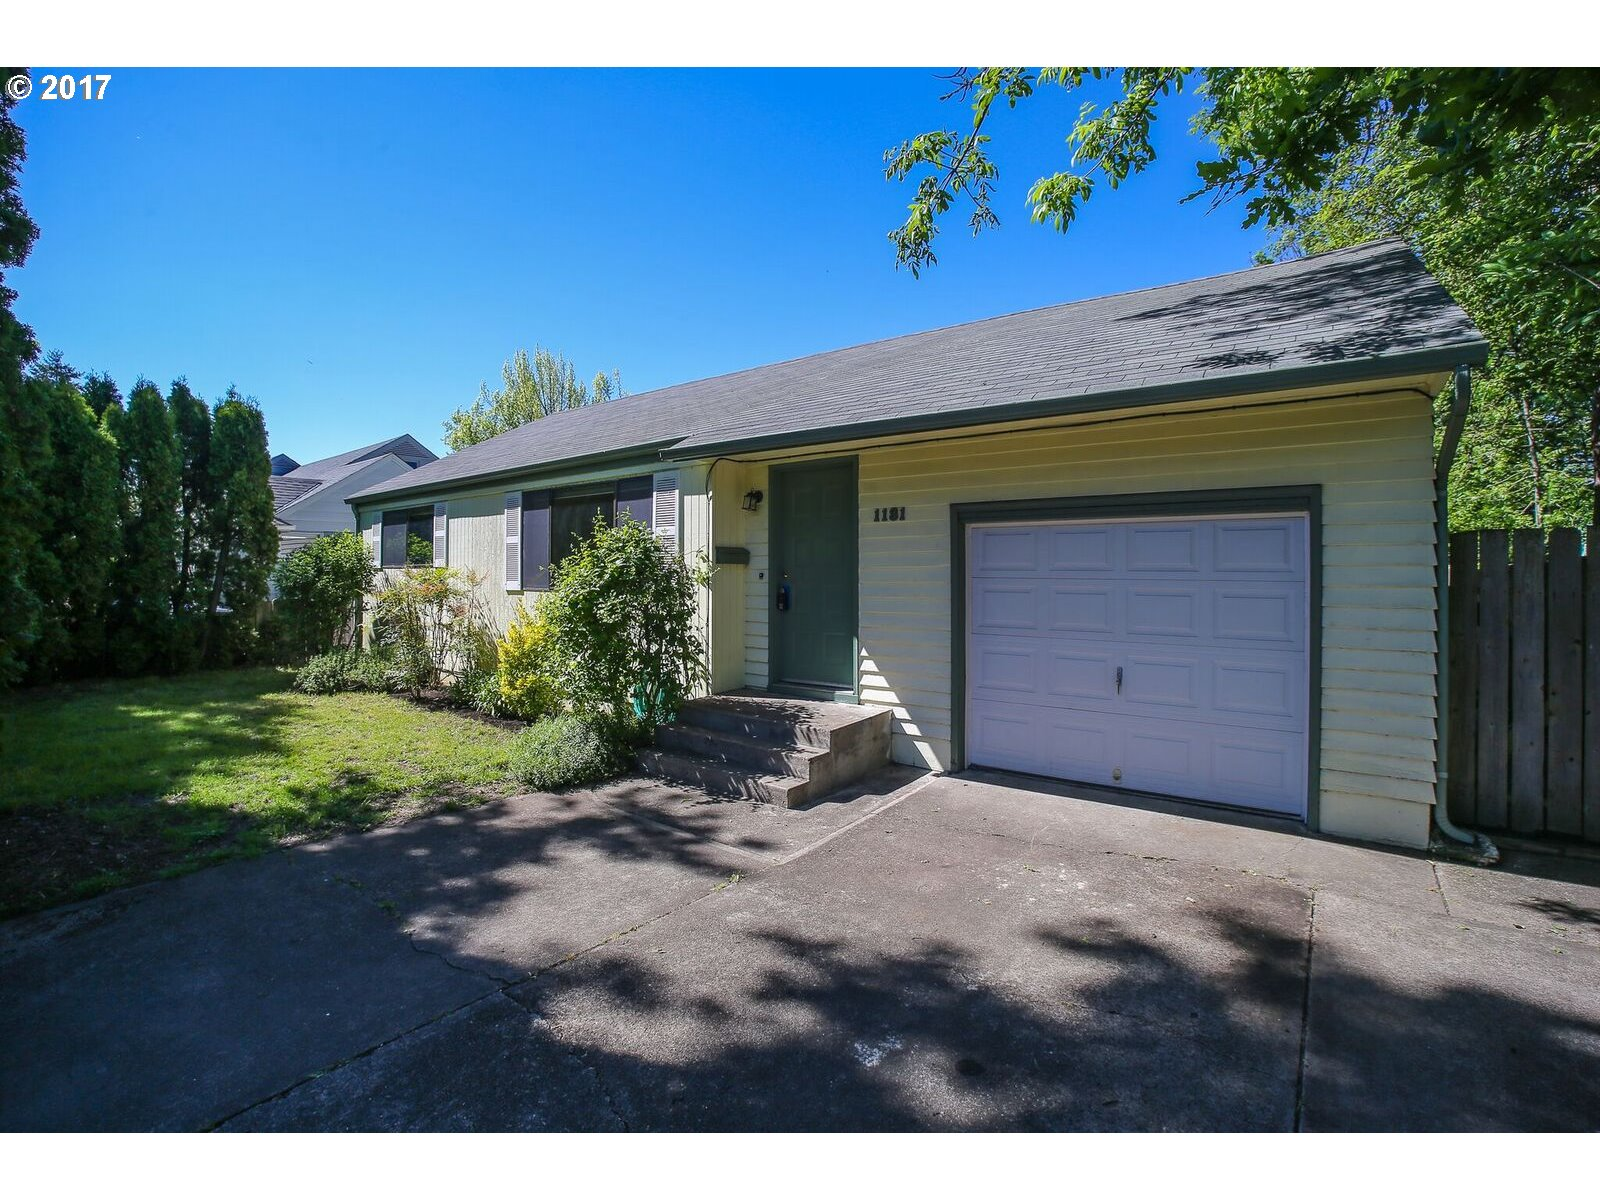 1181 W 13TH AVE, Eugene, OR 97402